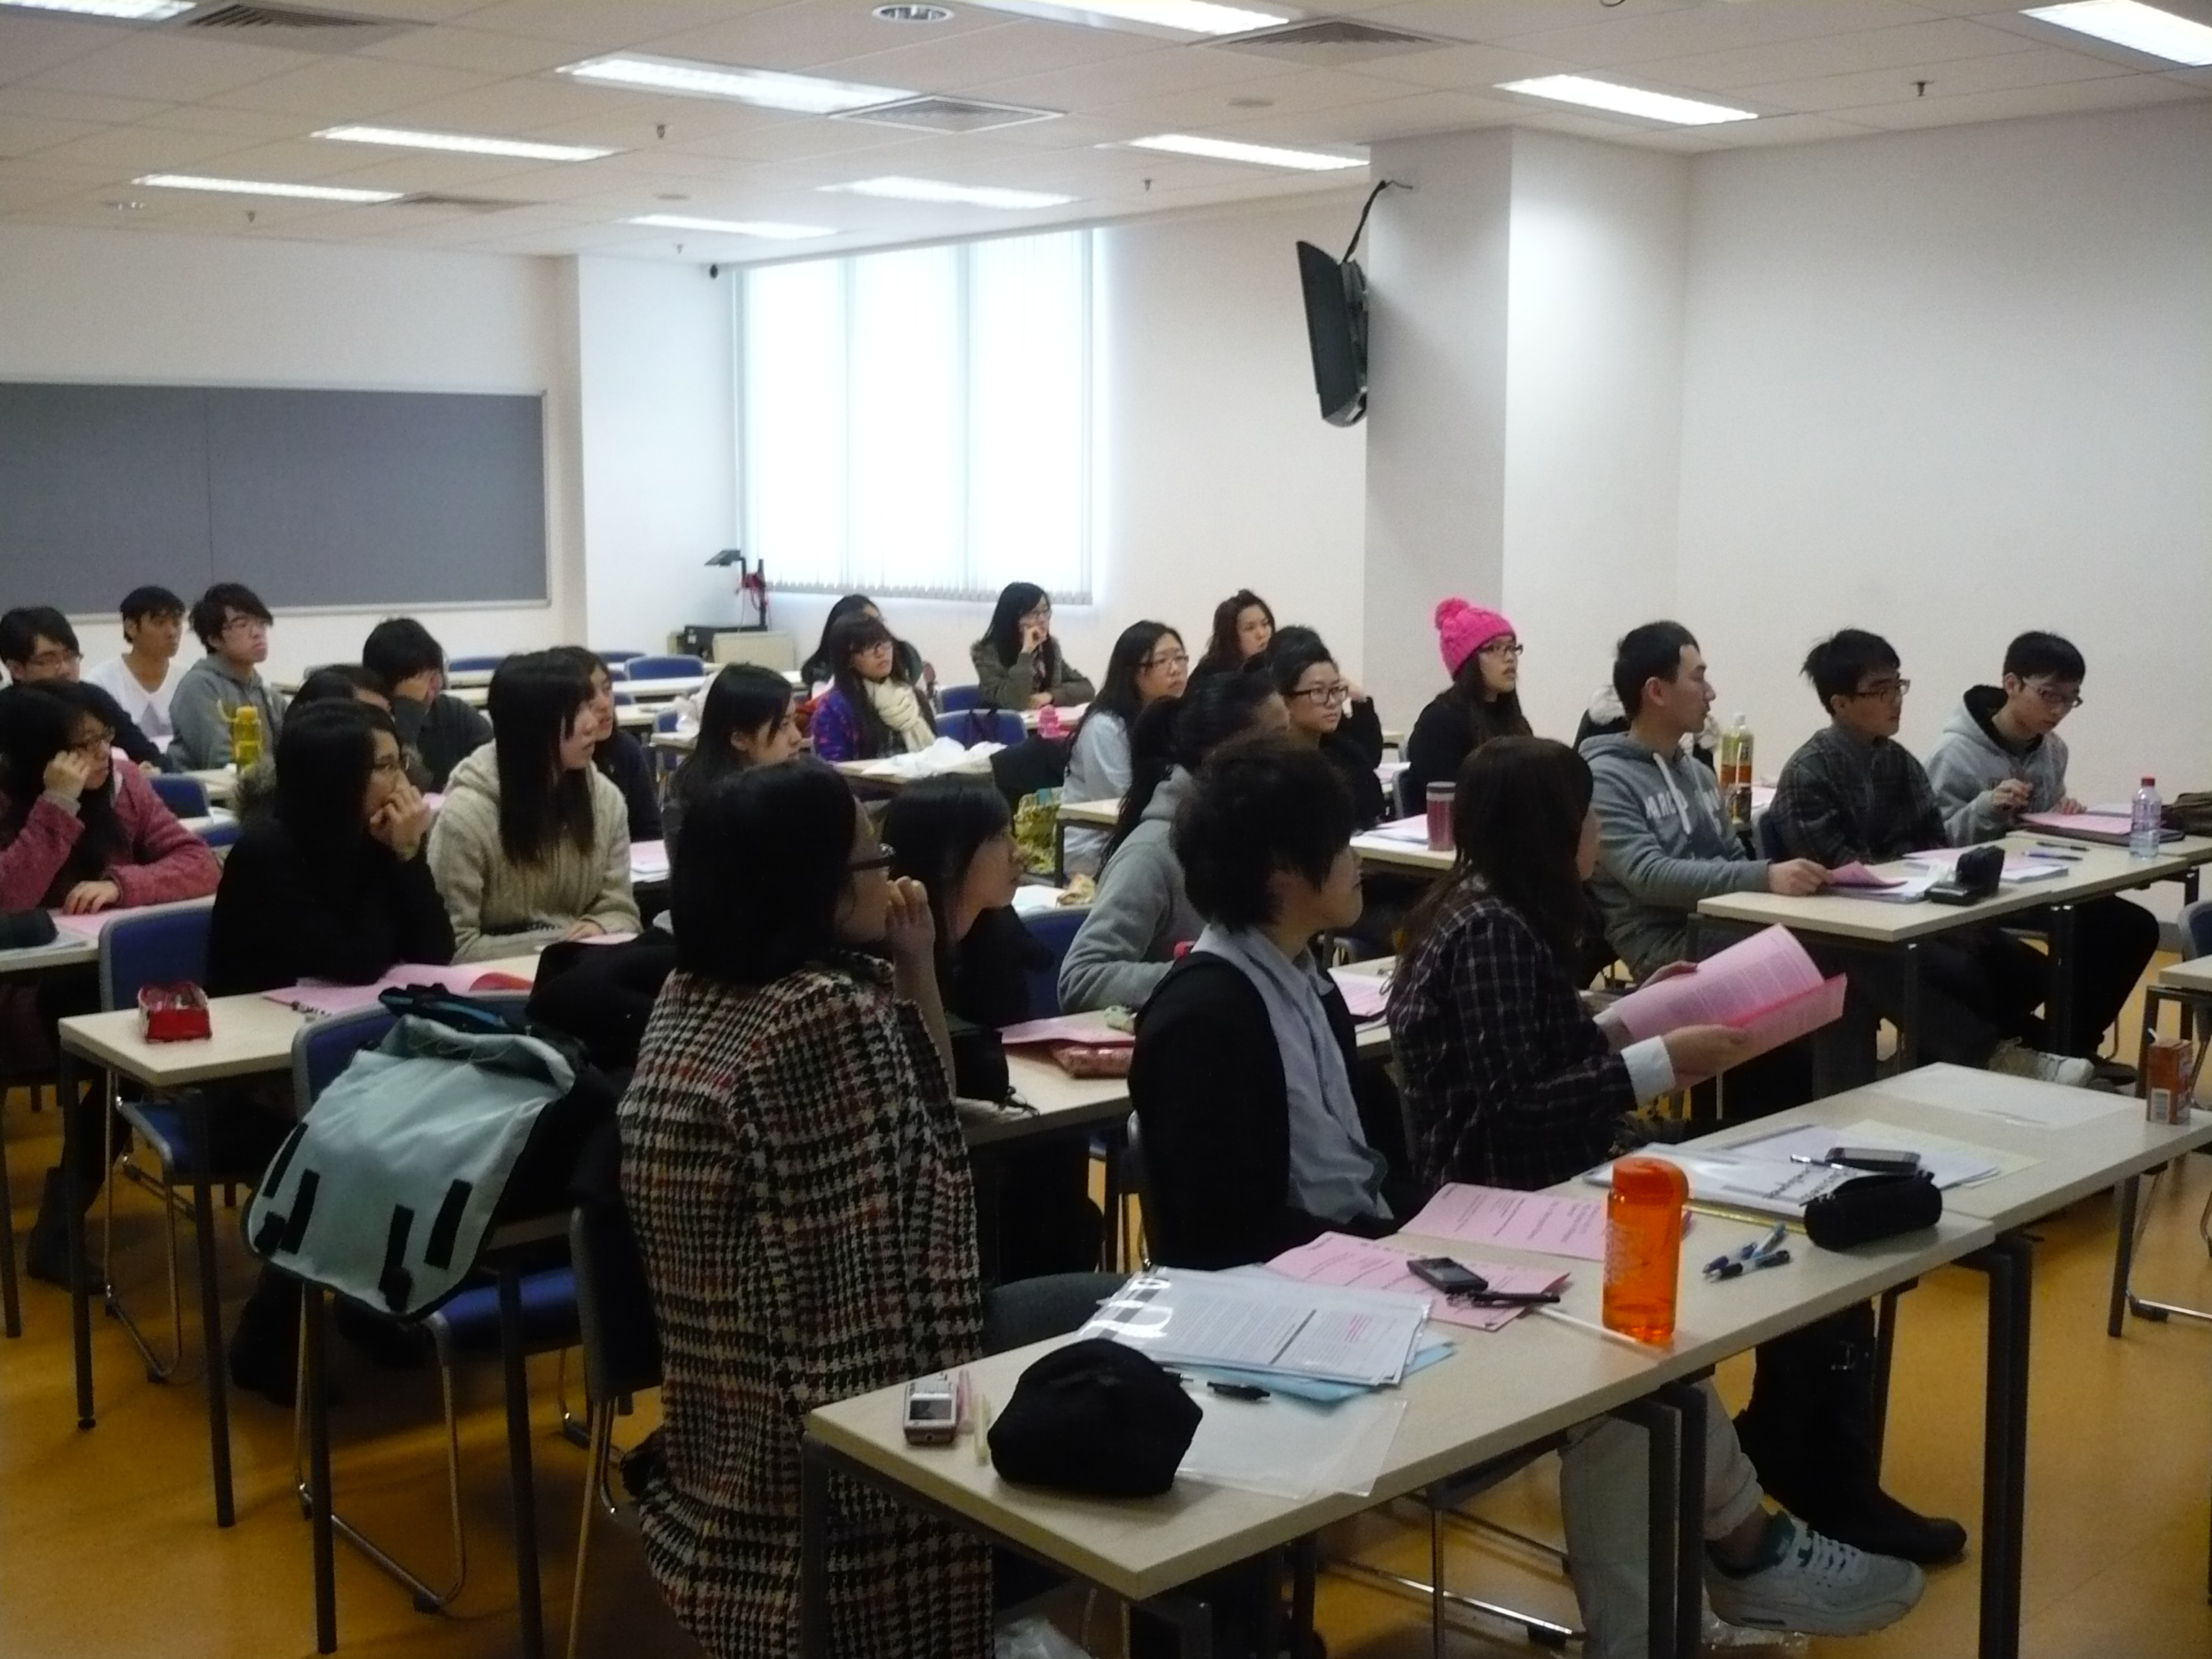 Top-up Degree Programme Talk (for Year 2 Students of the Higher Diploma in Medical and Health Products Management Programme) - Photo - 7